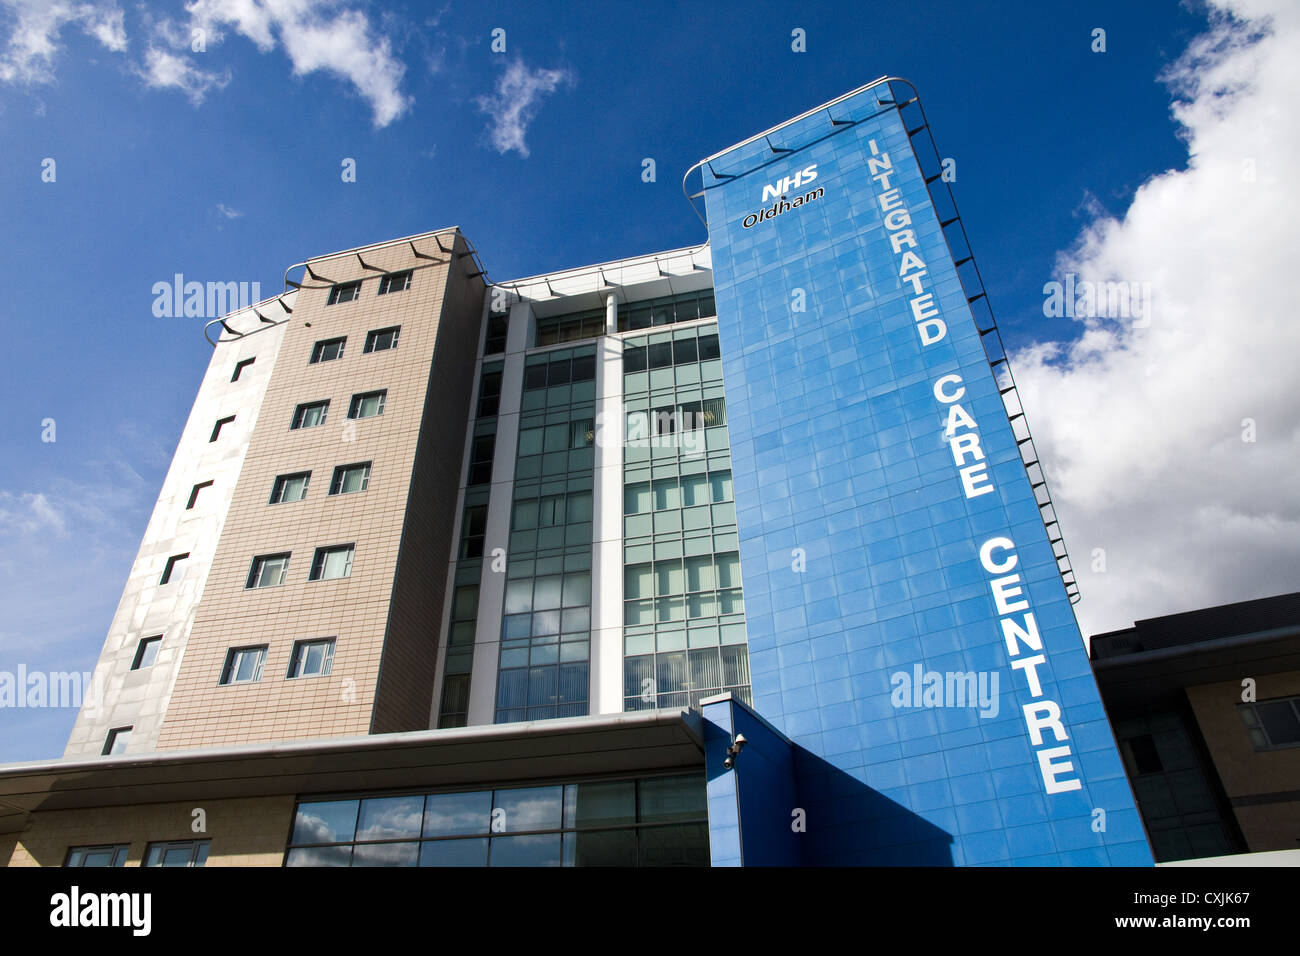 The Oldham Integrated Care Centre, Oldham, Greater Manchester, England , UK - Stock Image